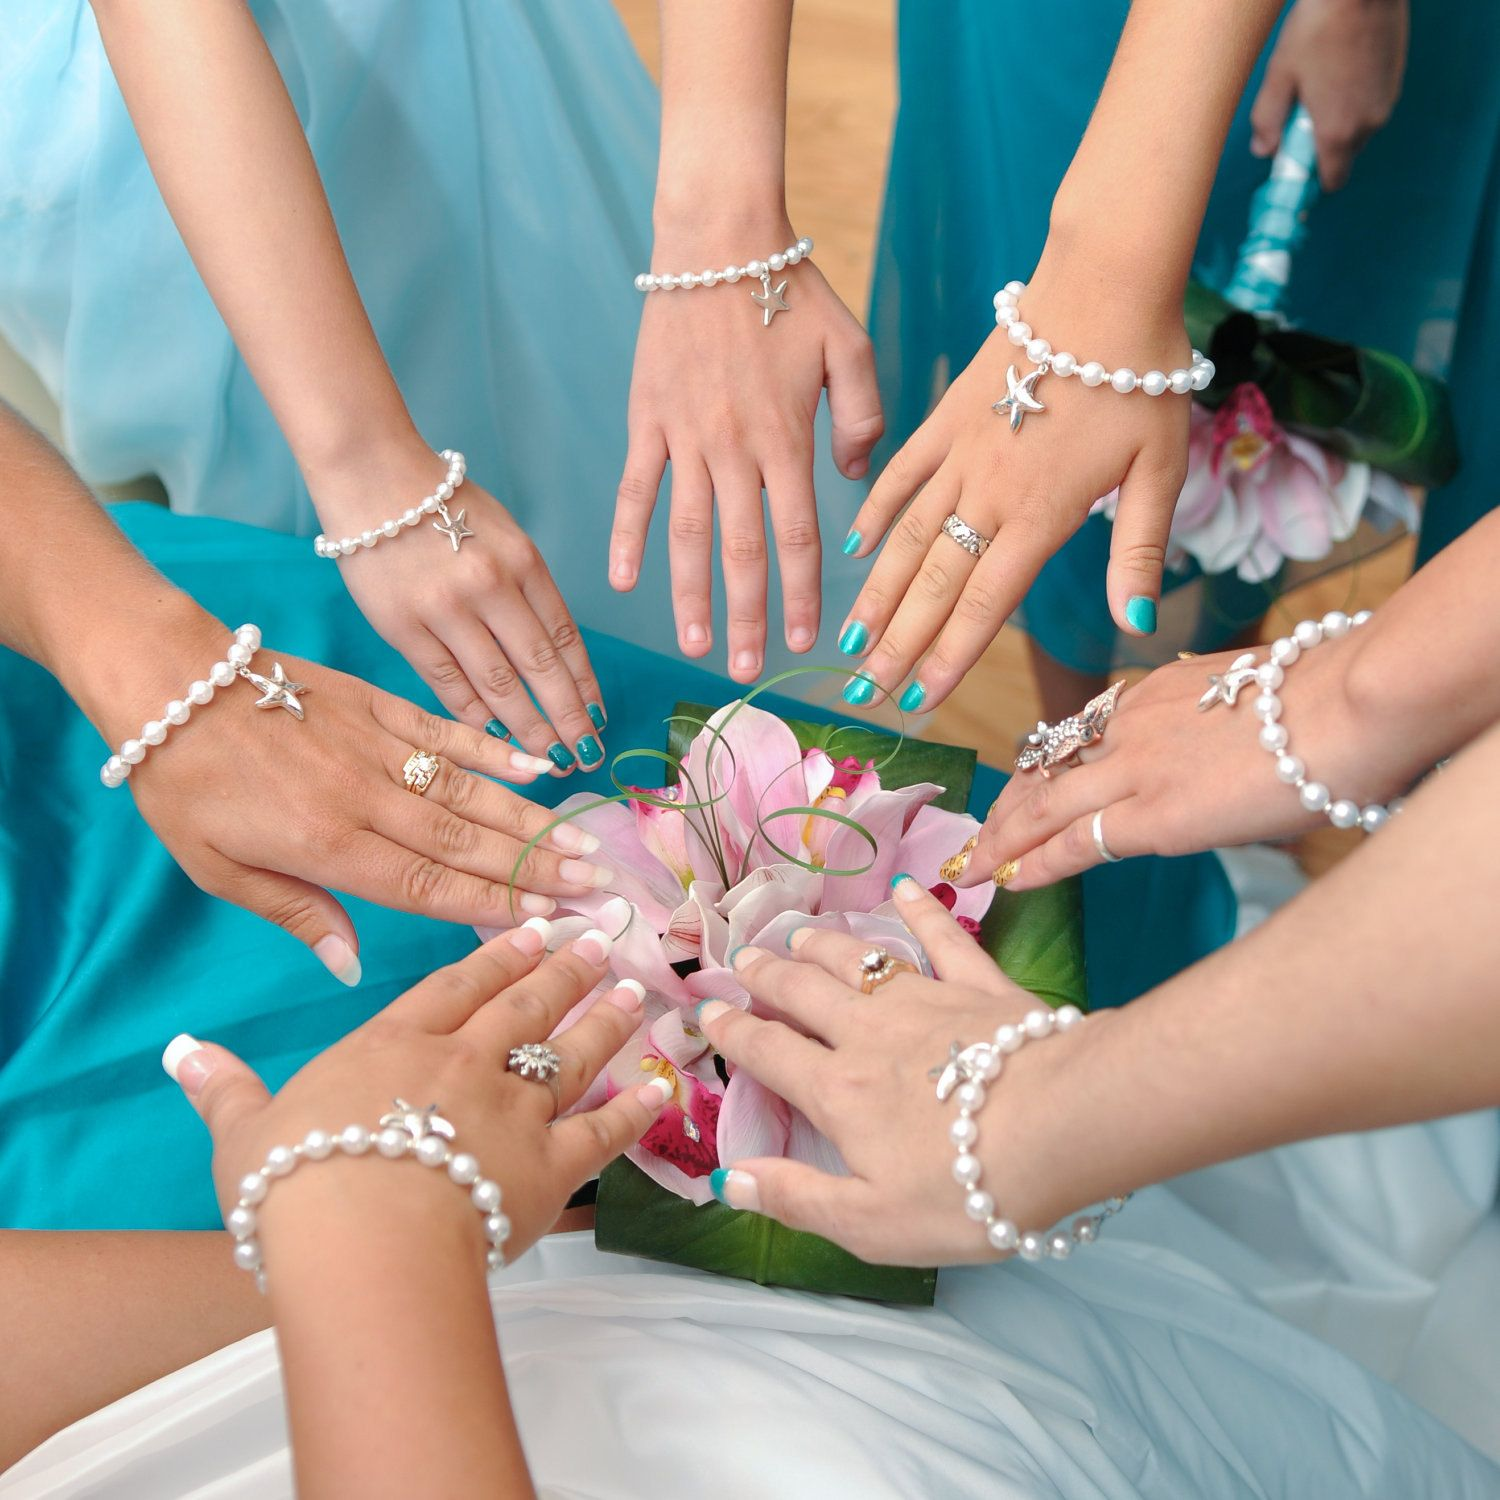 Pearl Bracelet With Silver Starfish Charm For The Bride And Her Bridesmaids 15 00 Via